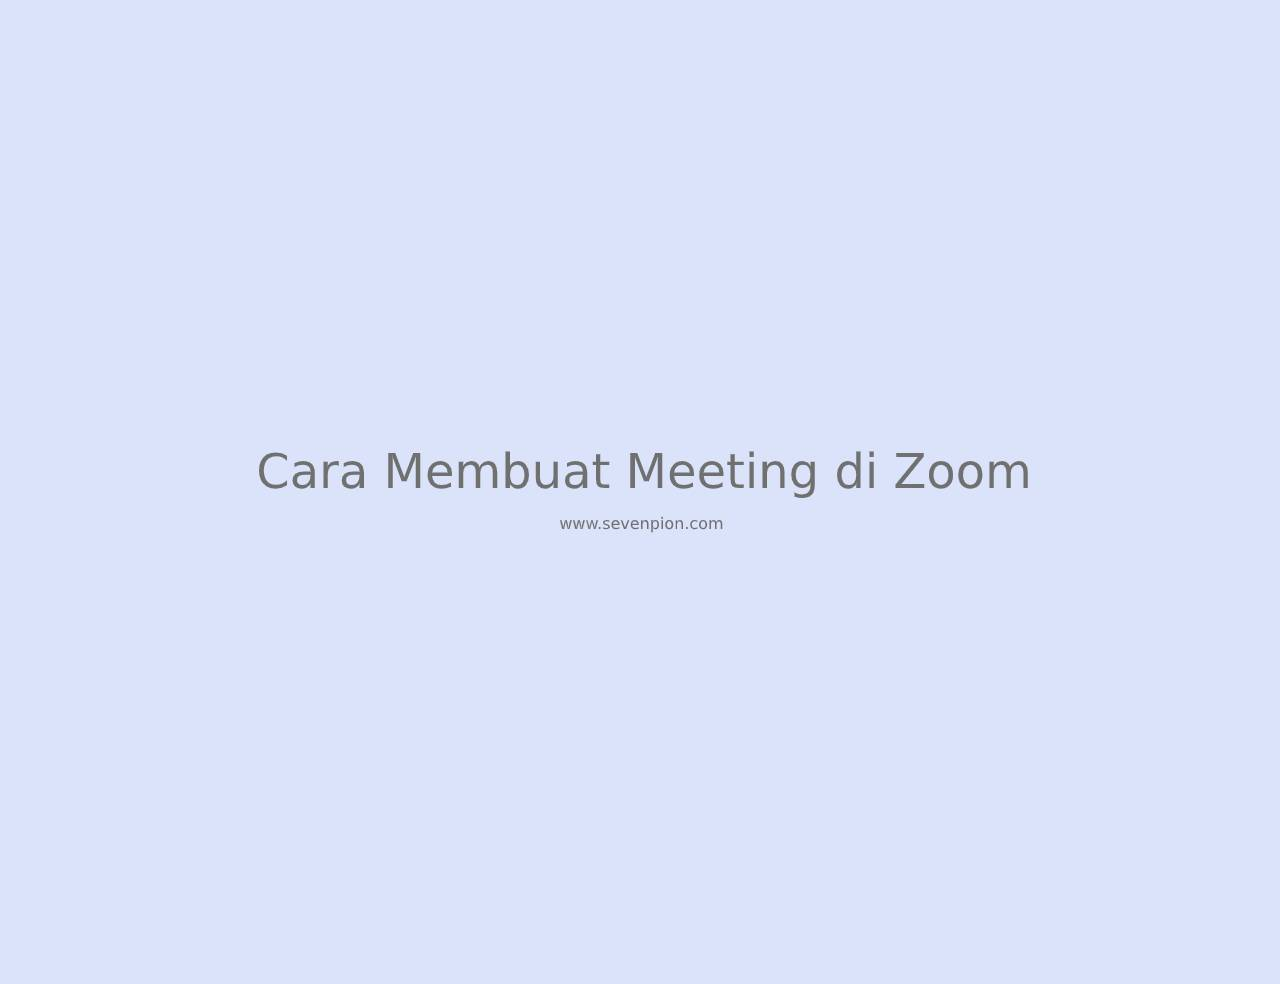 cara-membuat-meeting-di-zoom